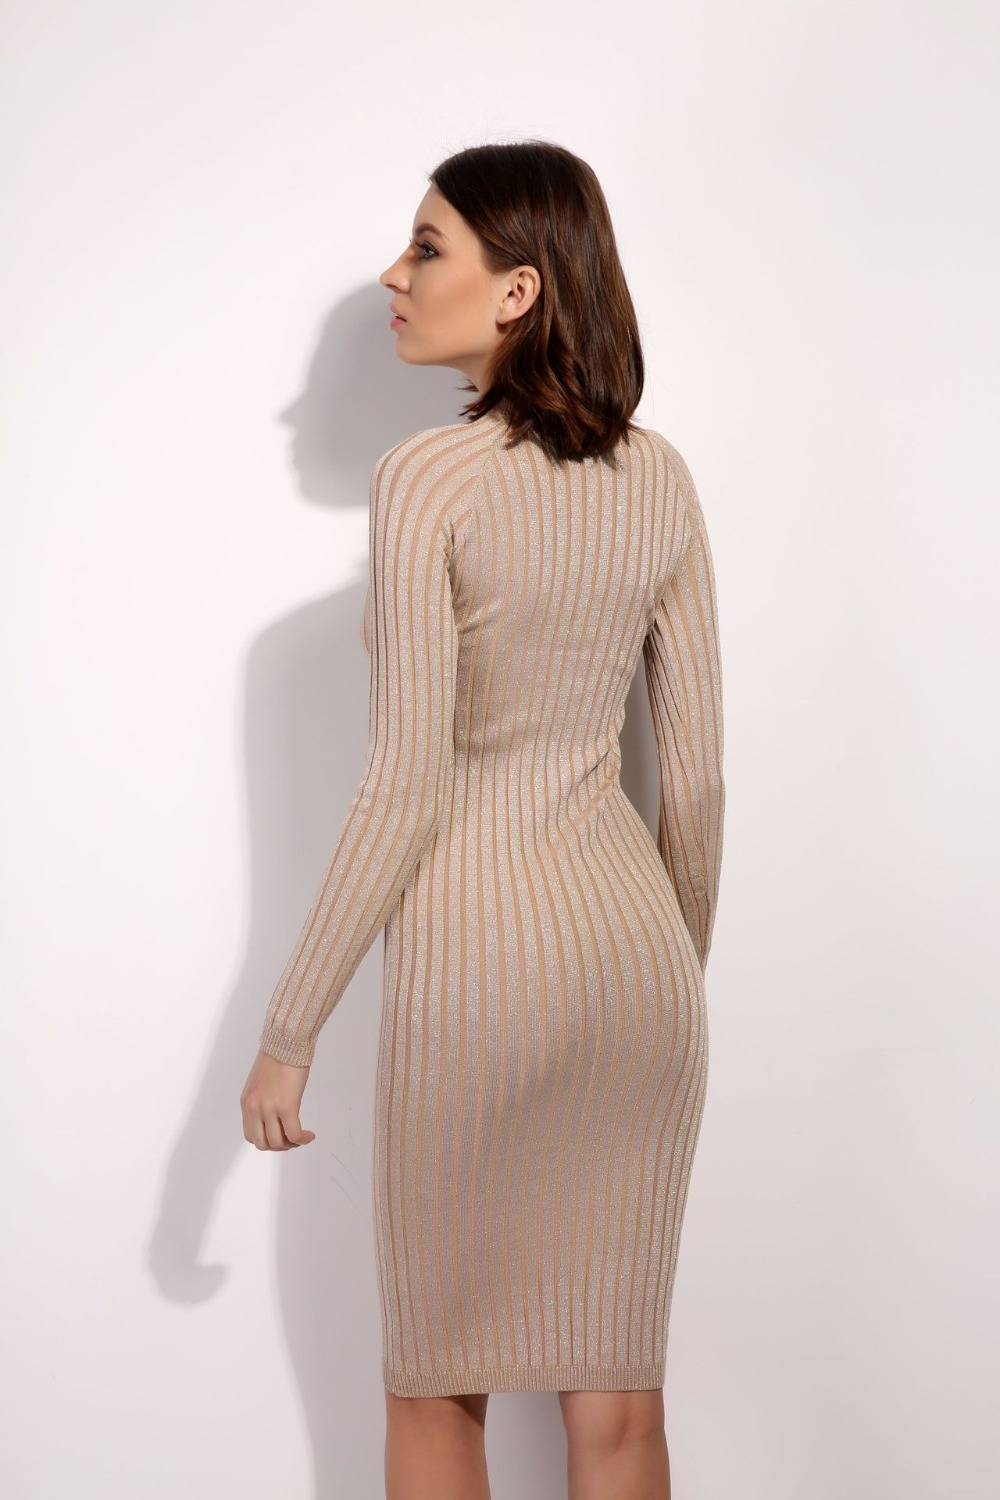 Knitted Dress (14)